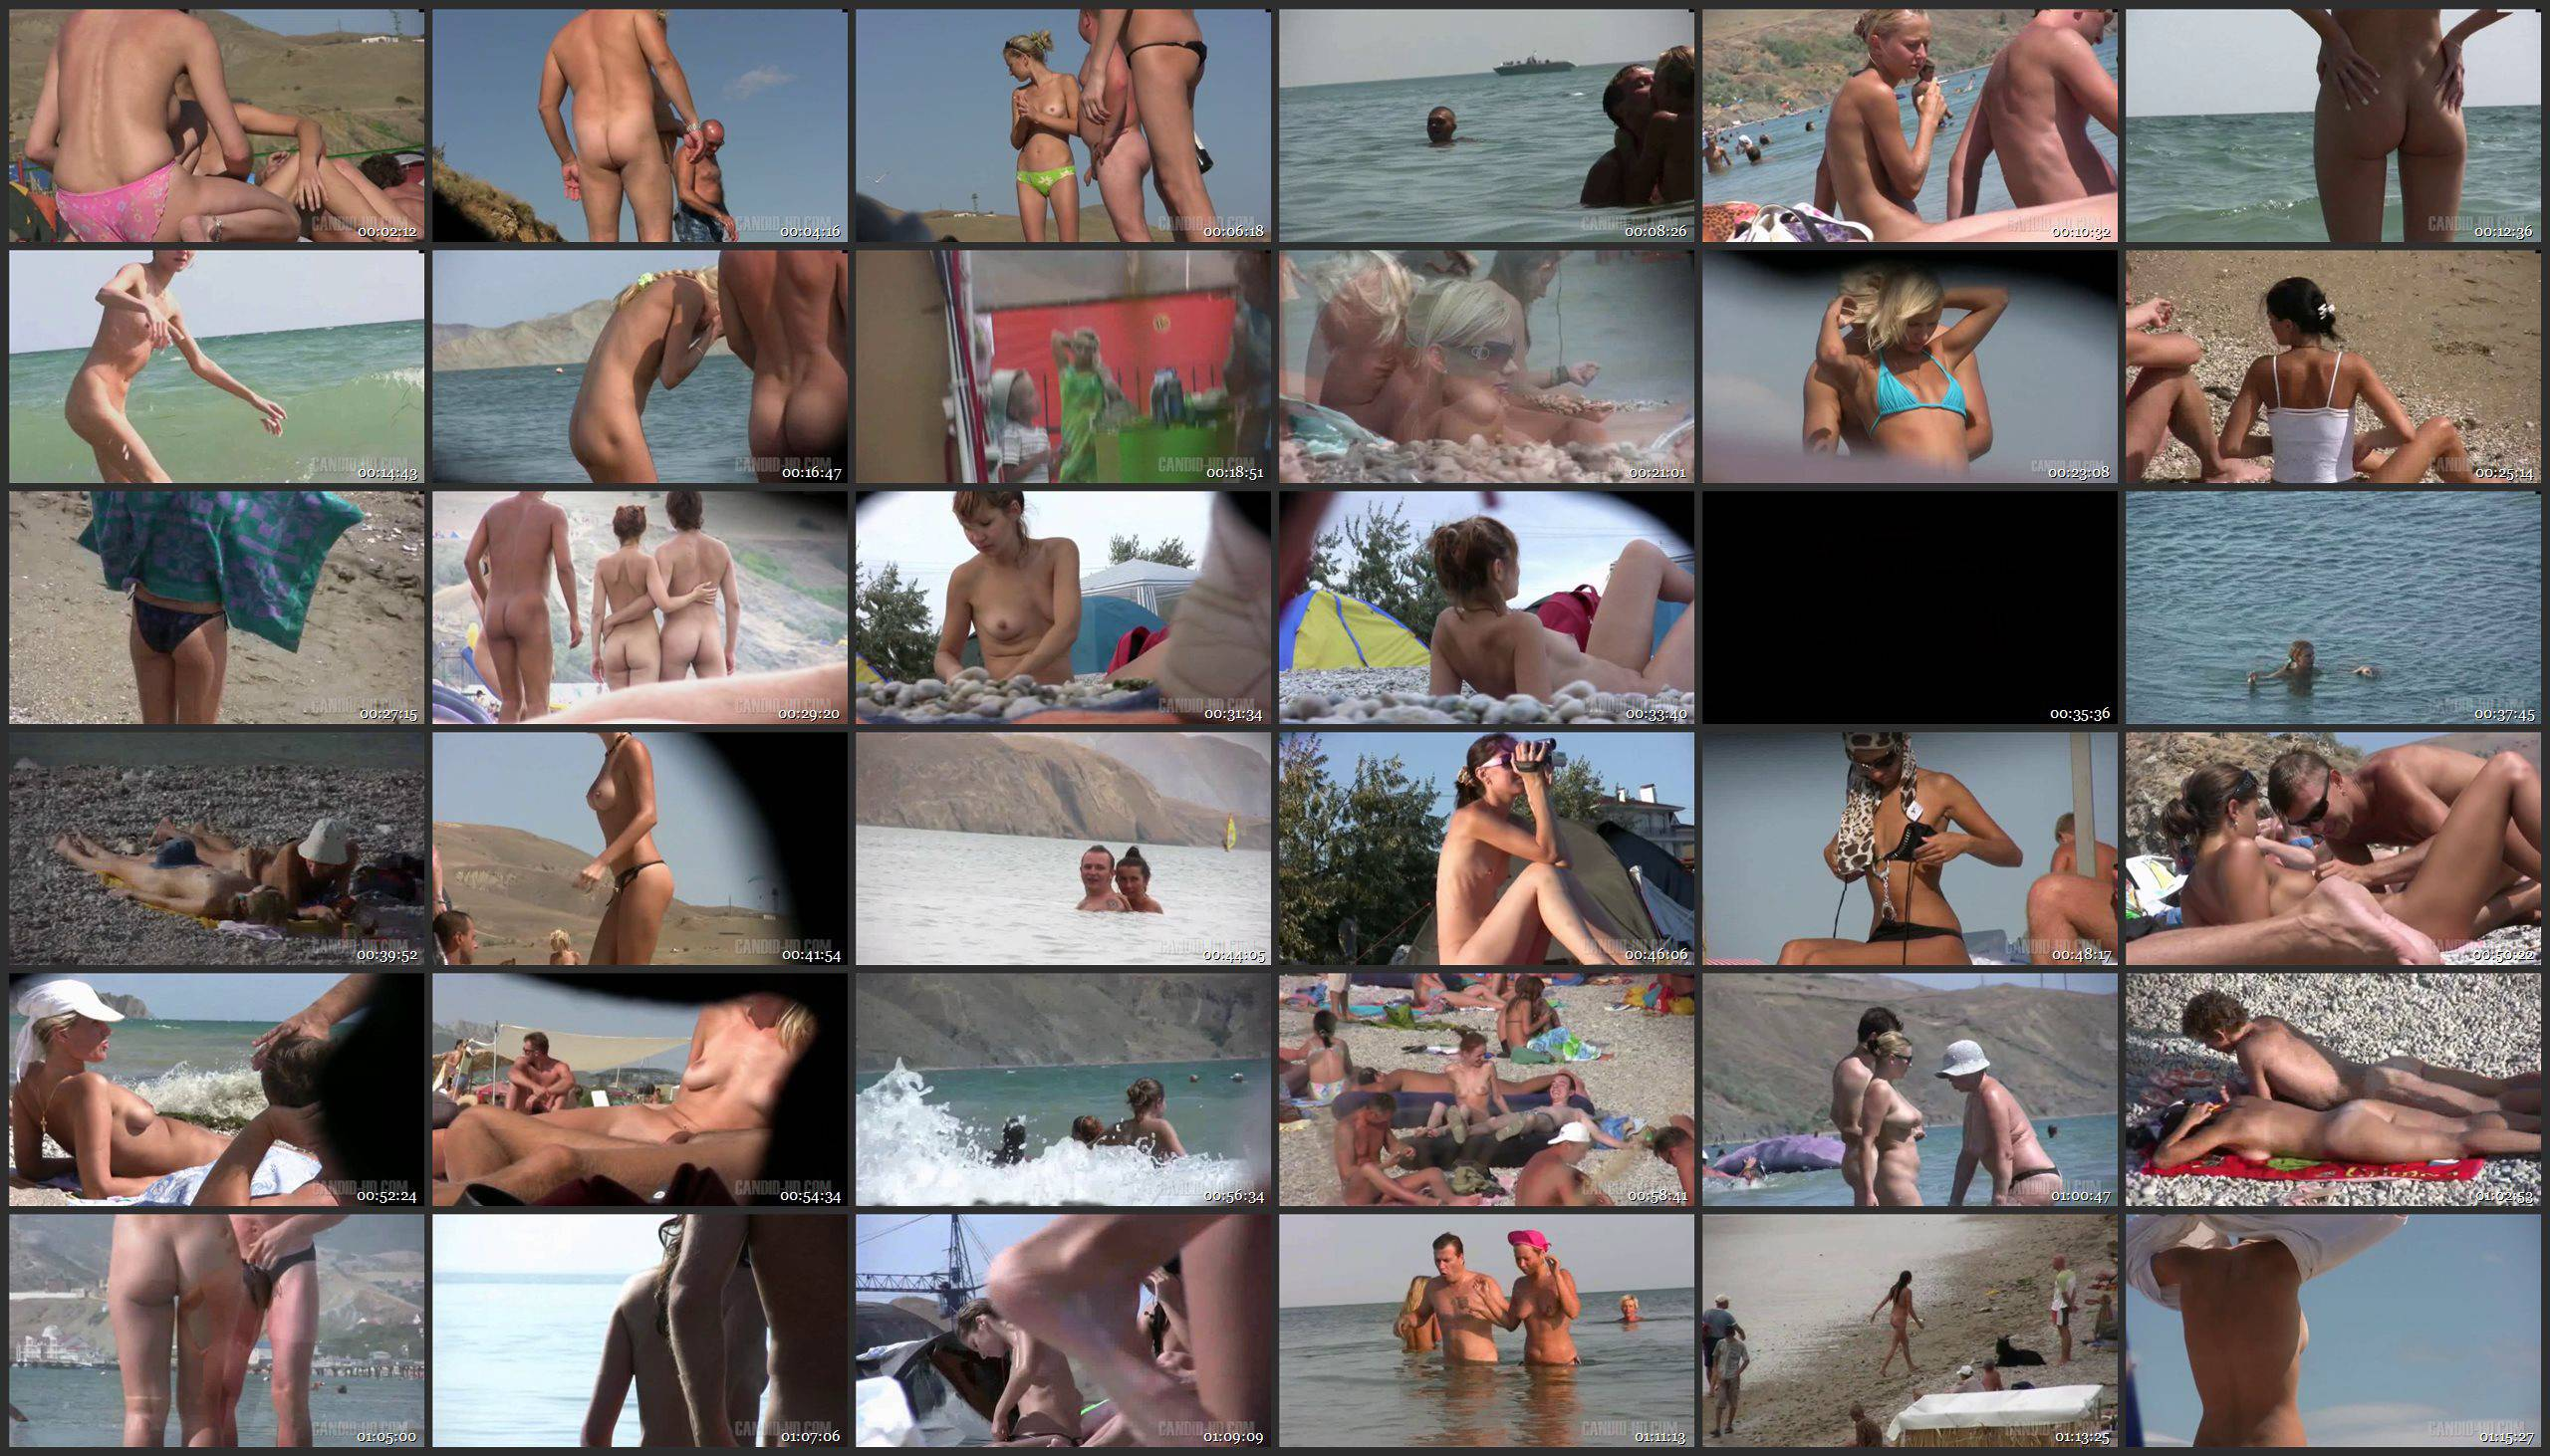 Candid-HD 3 Couples On The Beach - Thumbnails